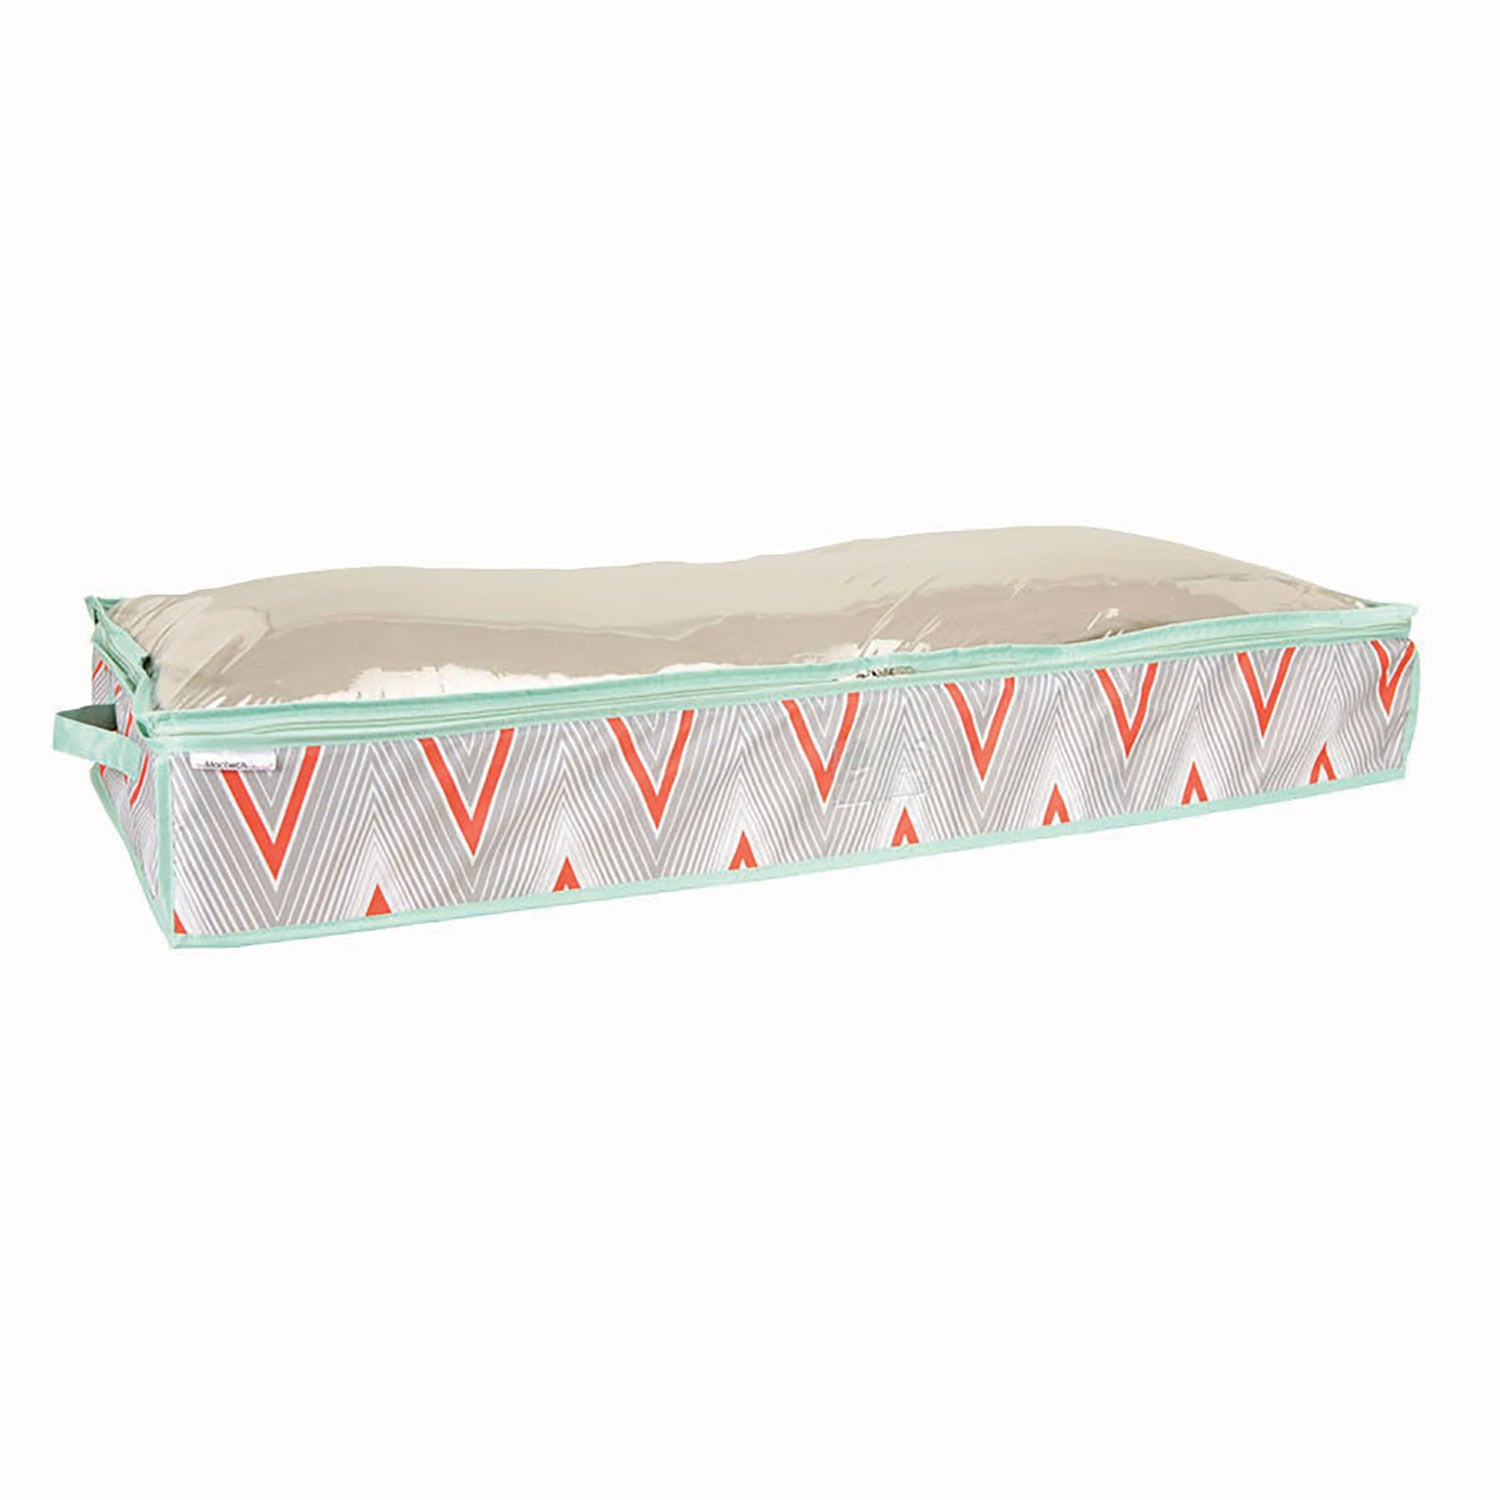 Under the Bed Storage Bag - Faux Jute